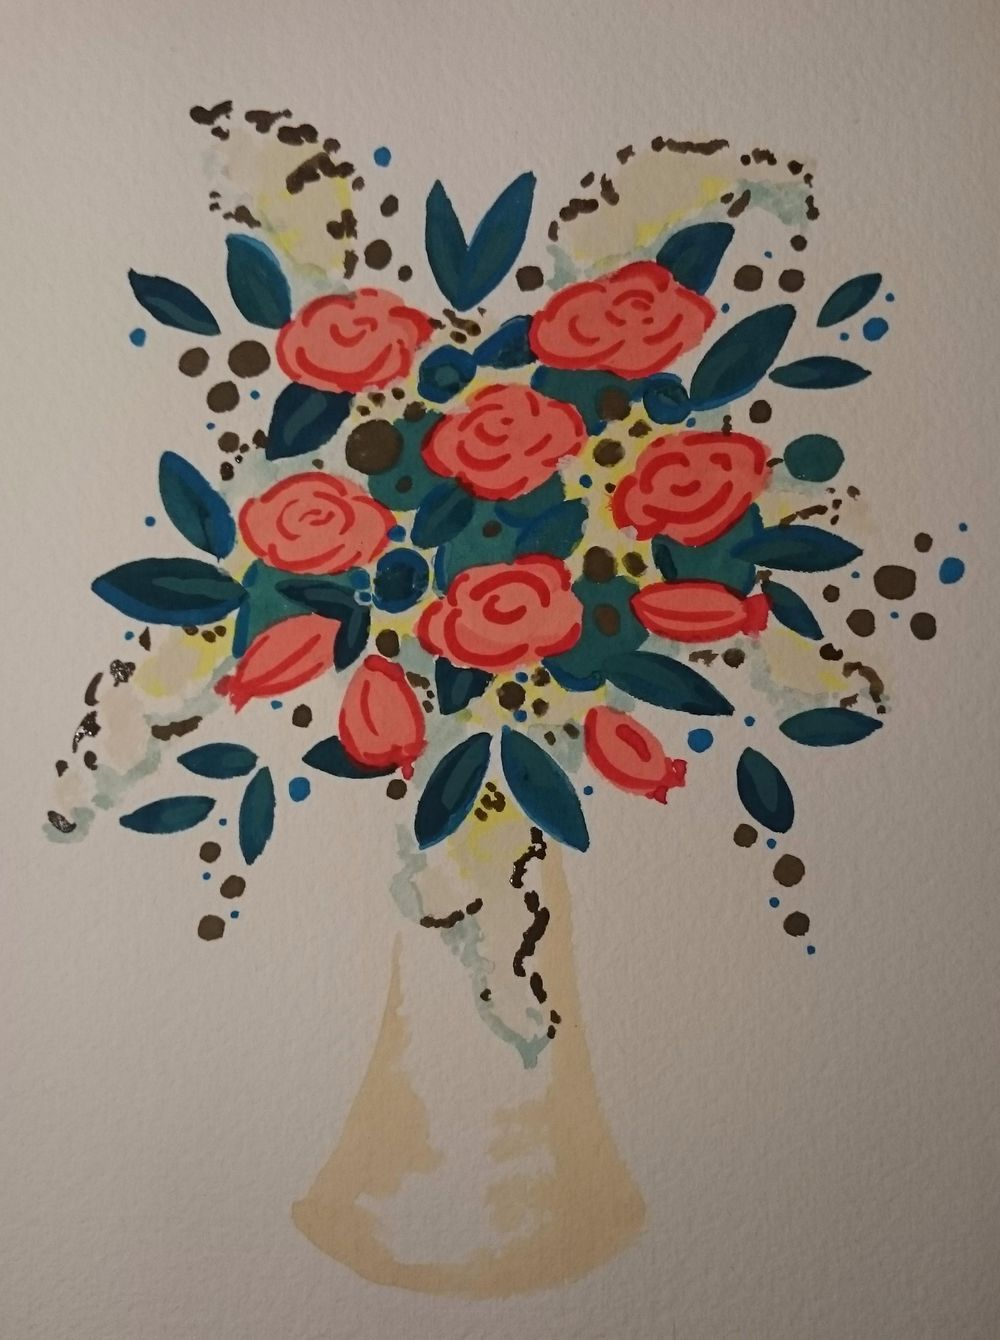 Watercolor Florals - image 5 - student project